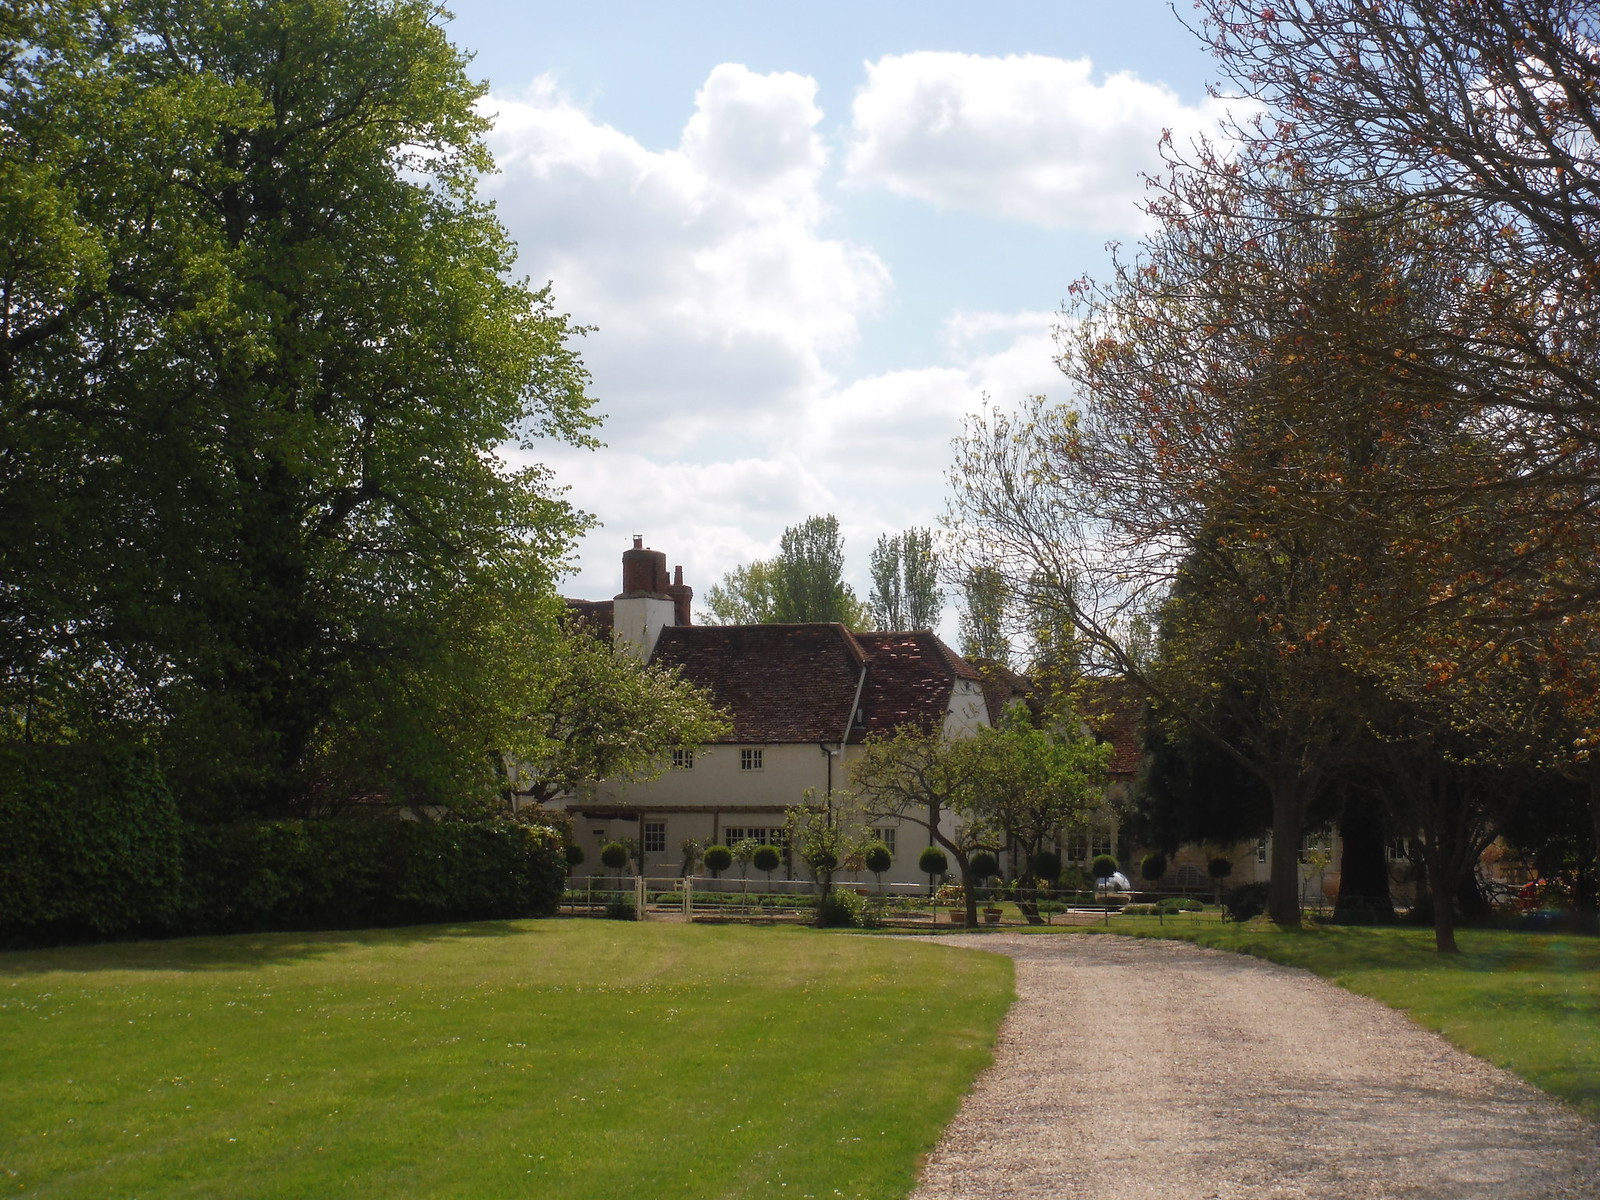 House by Church in Worminghall SWC Walk 190 - Thame Circular